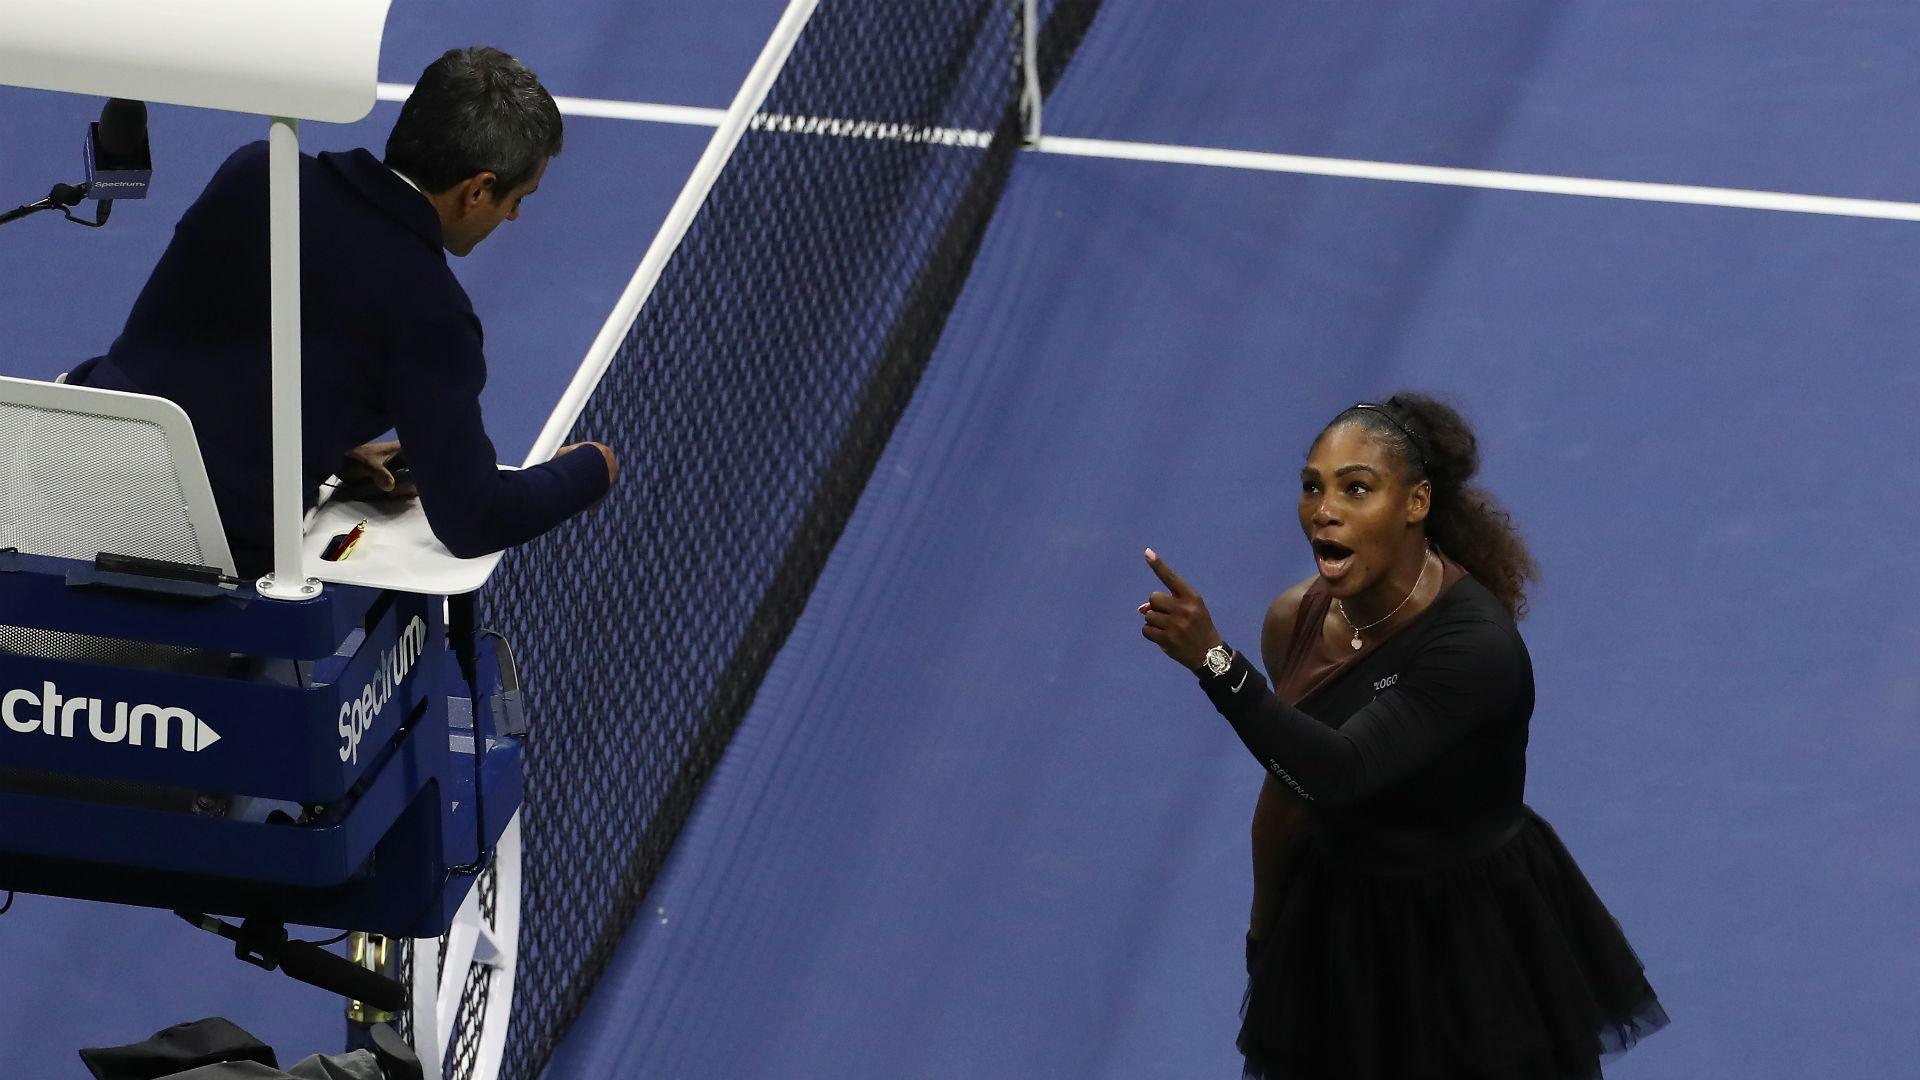 Carlos Ramos Serena Williams - cropped